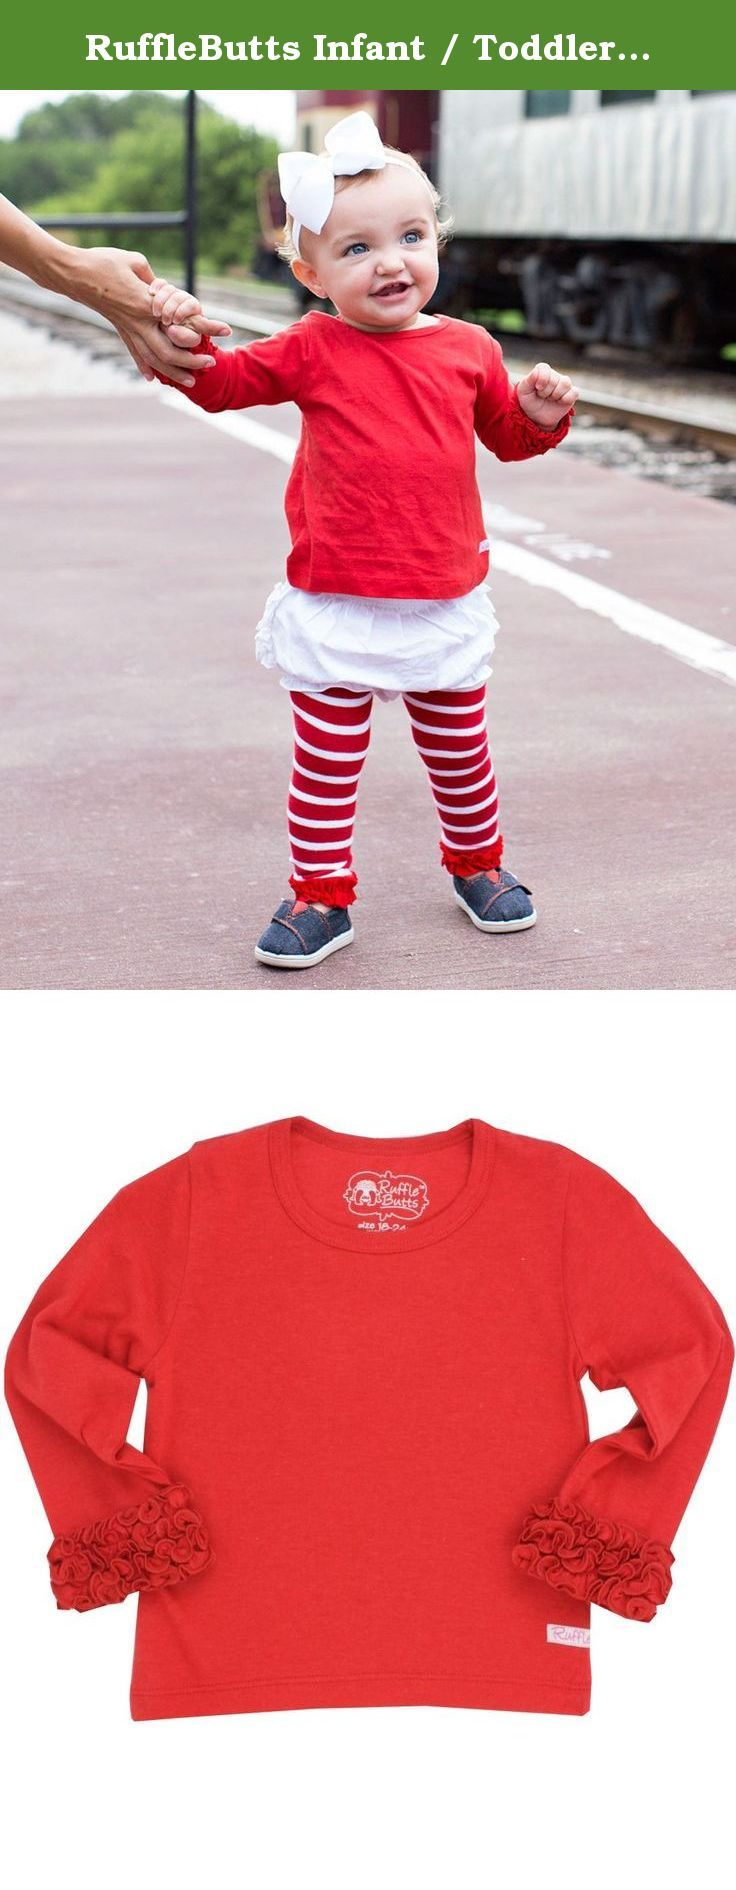 RuffleButts Infant / Toddler Girls Ruffled Long Sleeve Undershirt Tee - Red - 12-18m. Making our RuffleButts apparel even more convenient, this long sleeve Undershirt is the perfect addition to her winter wardrobe. Wear underneath her favorite Swing Top or Ruffle Dress for those cold winter days.